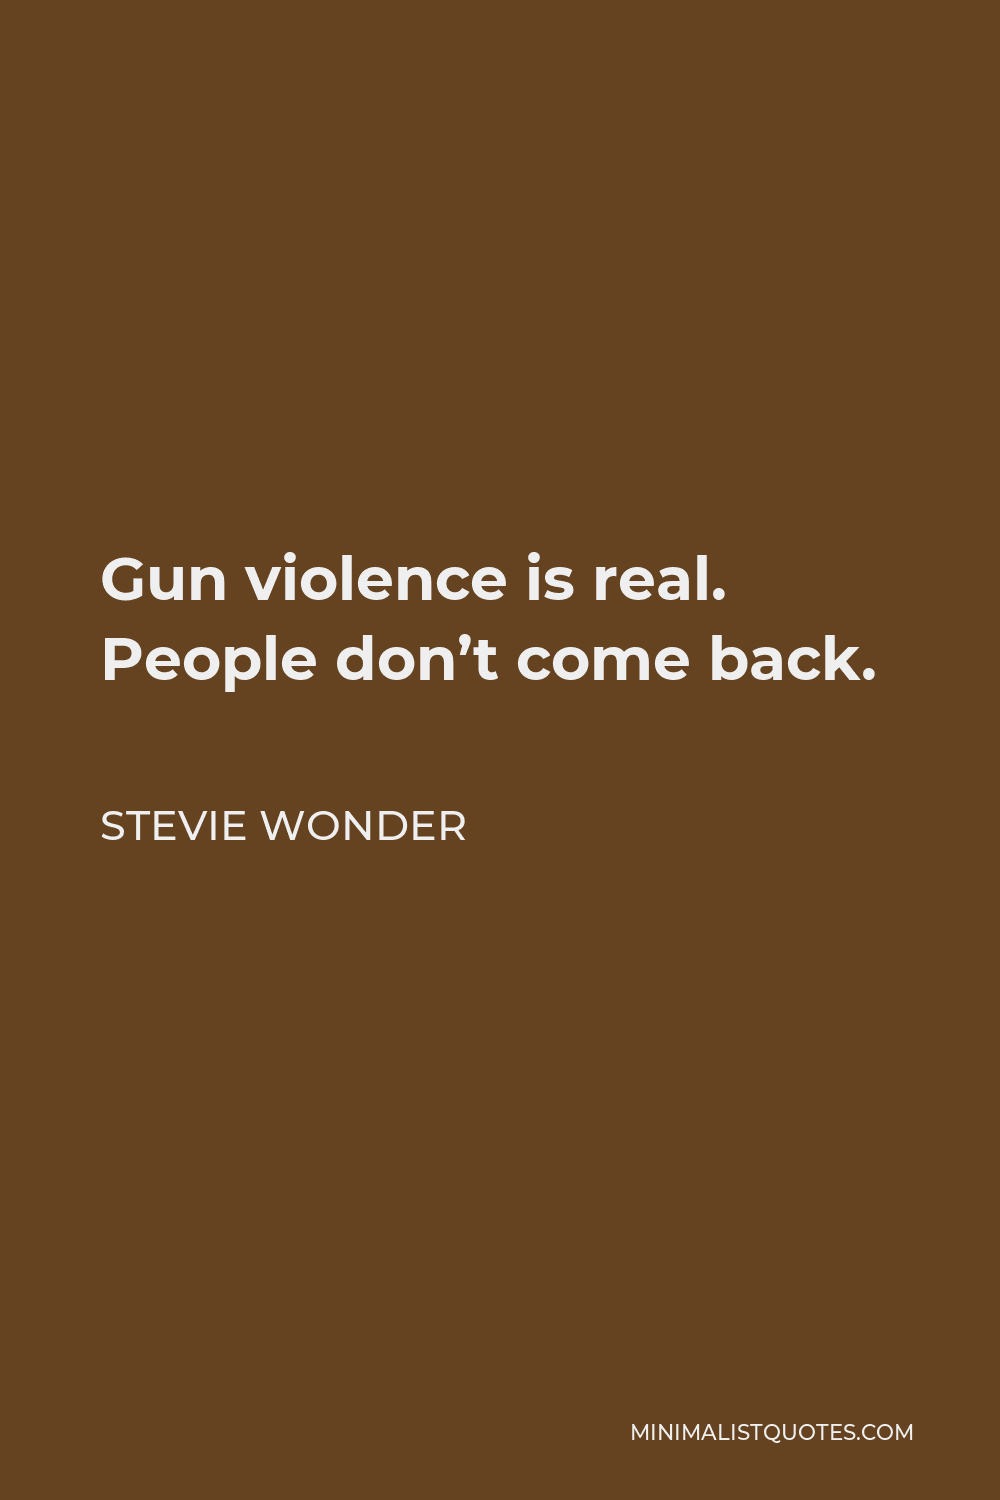 Stevie Wonder Quote - Gun violence is real. People don't come back.